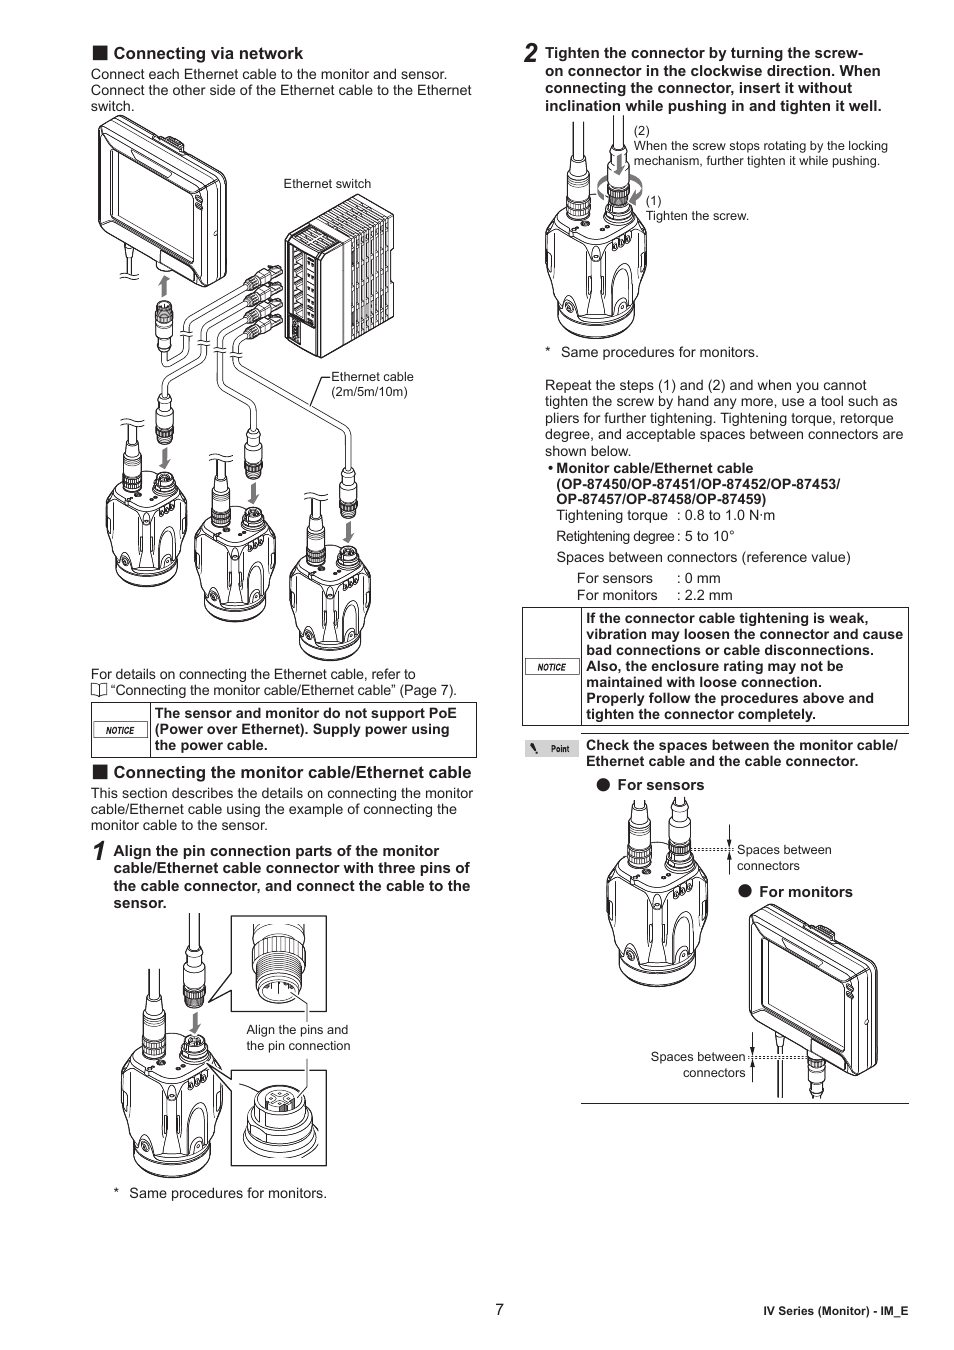 hight resolution of connecting via network connecting the monitor cable ethernet cable keyence iv m30 user manual page 7 10